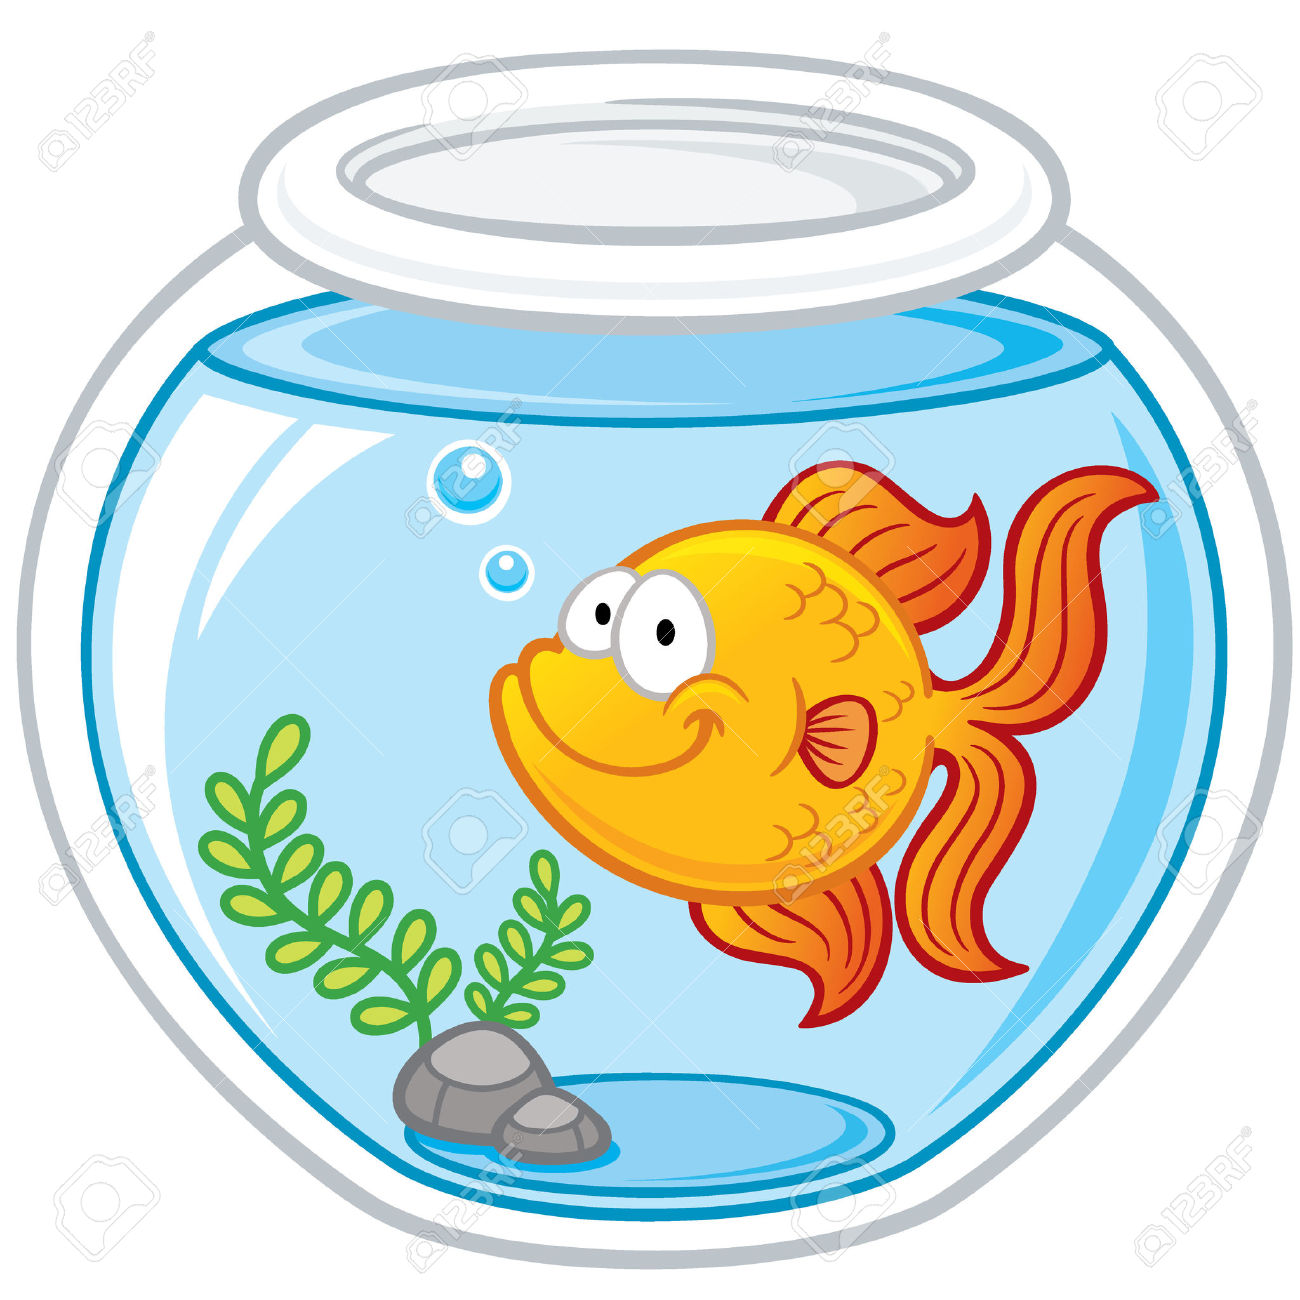 Goldfish clipart #2, Download drawings